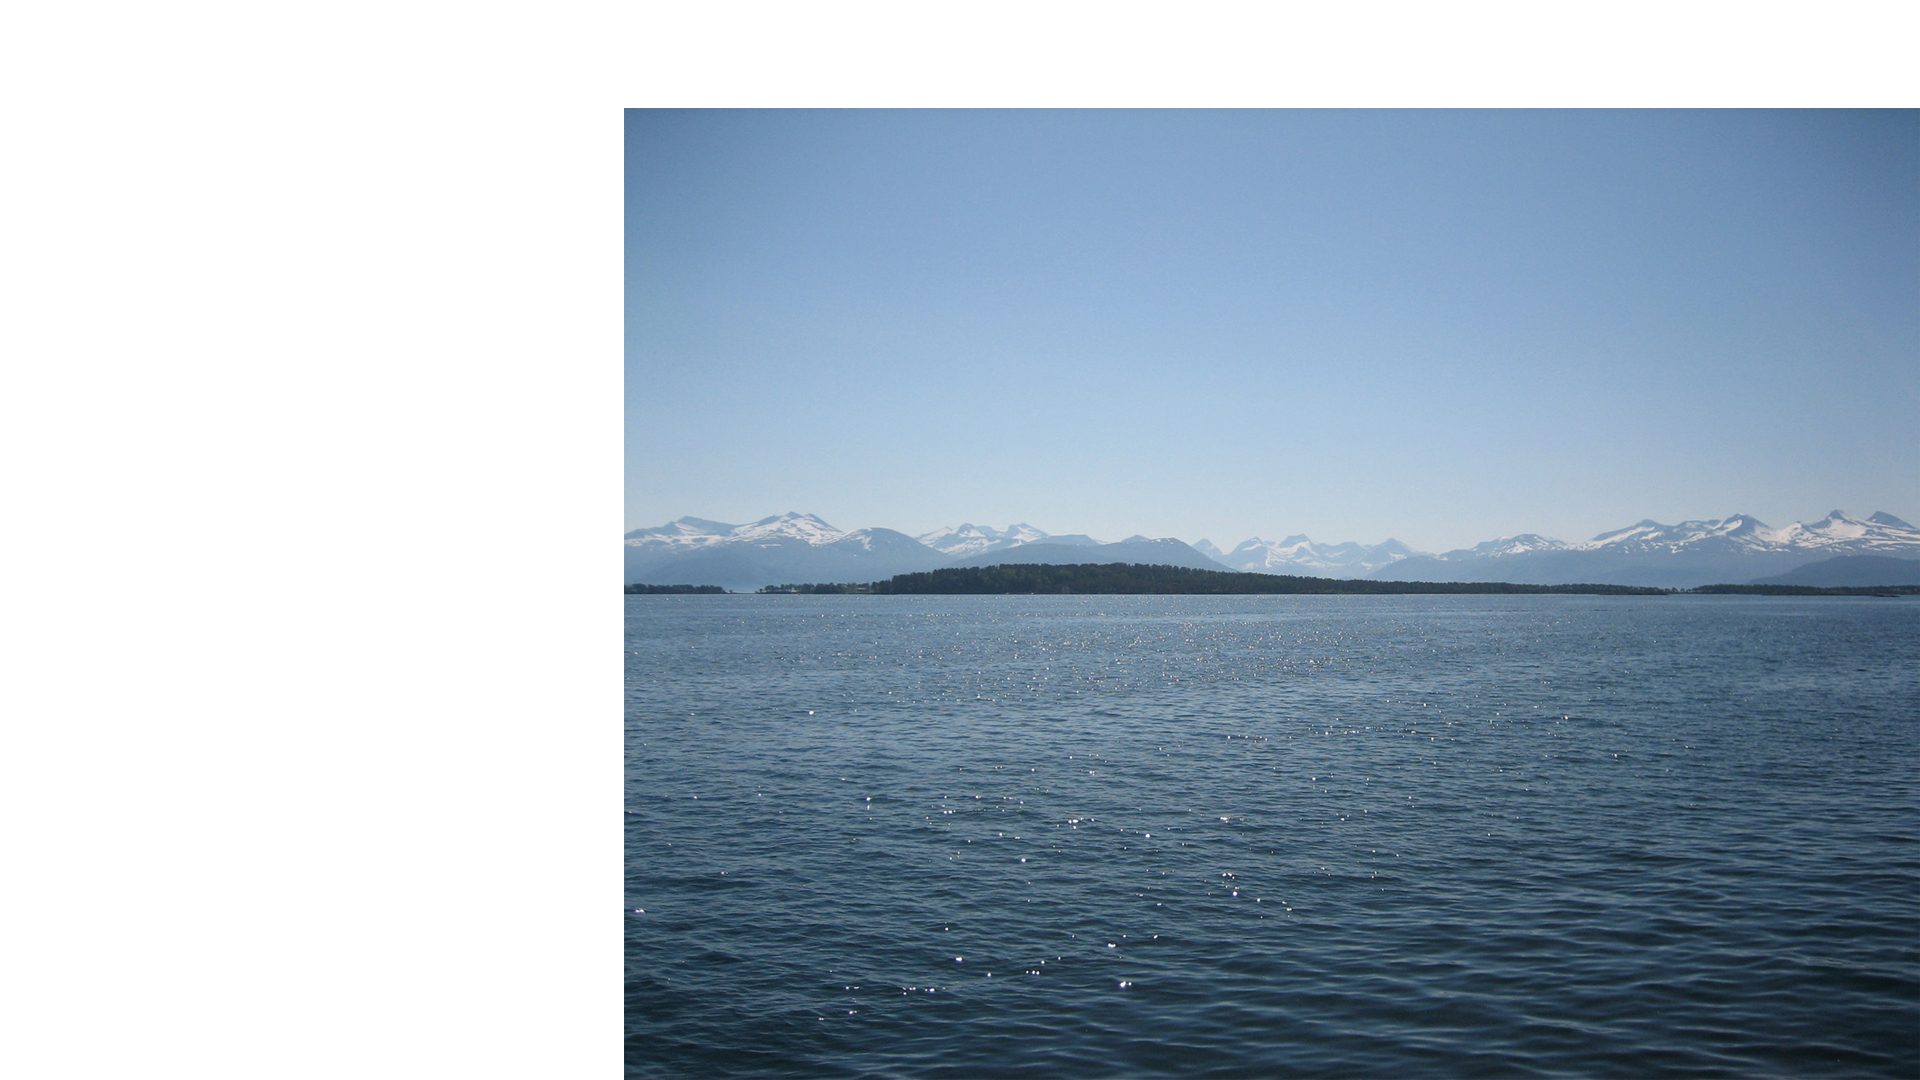 Seascape at Molde, Norway